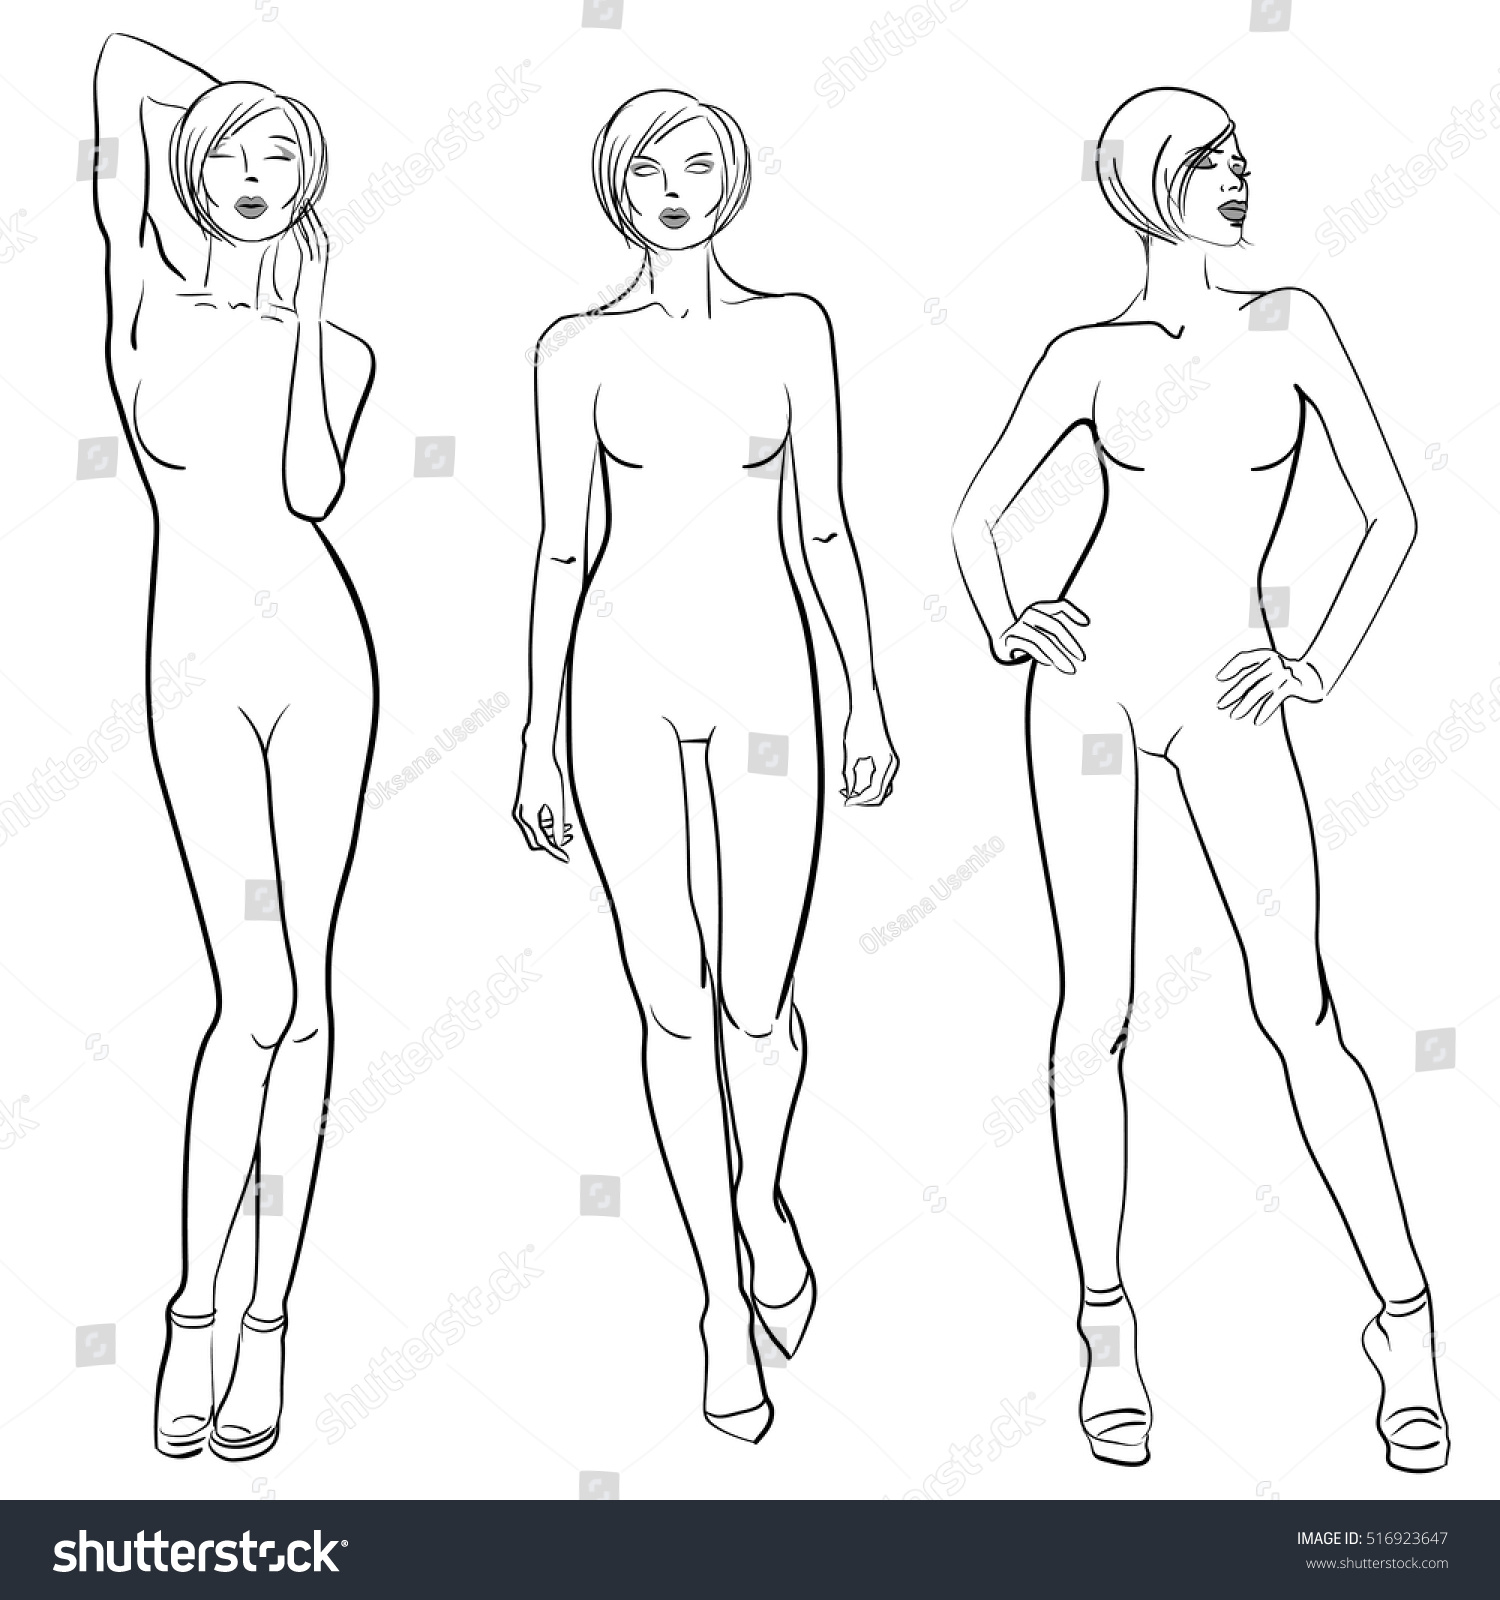 Sketch Fashion Models Templates Design Stock Vector Royalty Free